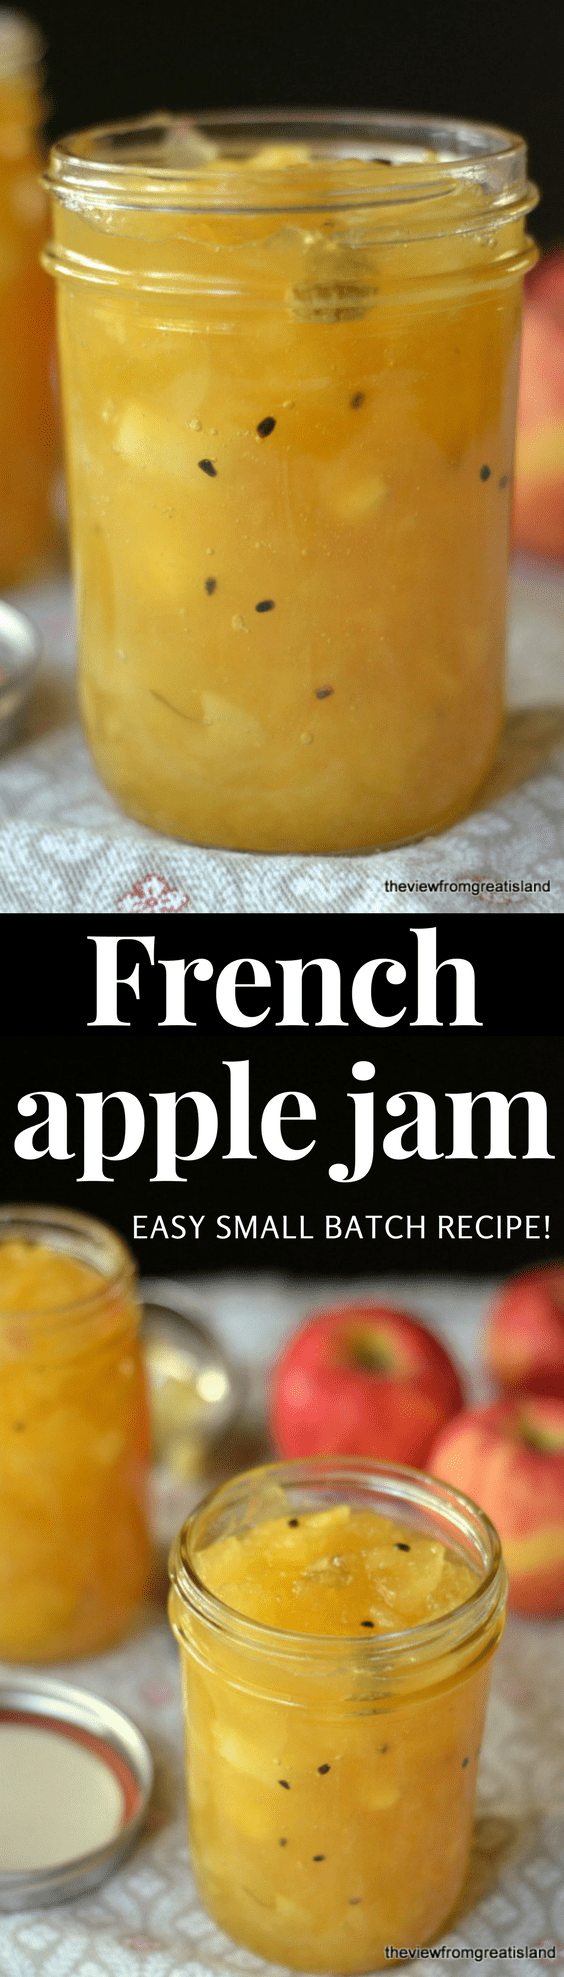 This unique small batch French Apple Jam is easy to make, has a gorgeous golden color, a fresh apple flavor, a chunky texture, and a surprise hint of spice from the cardamom. #jam #apples #preserves #cardamom #smallbatch #freezerjam #fallrecipe #foodgift #hostessgift #applejam #breakfast #brunch #canning #French